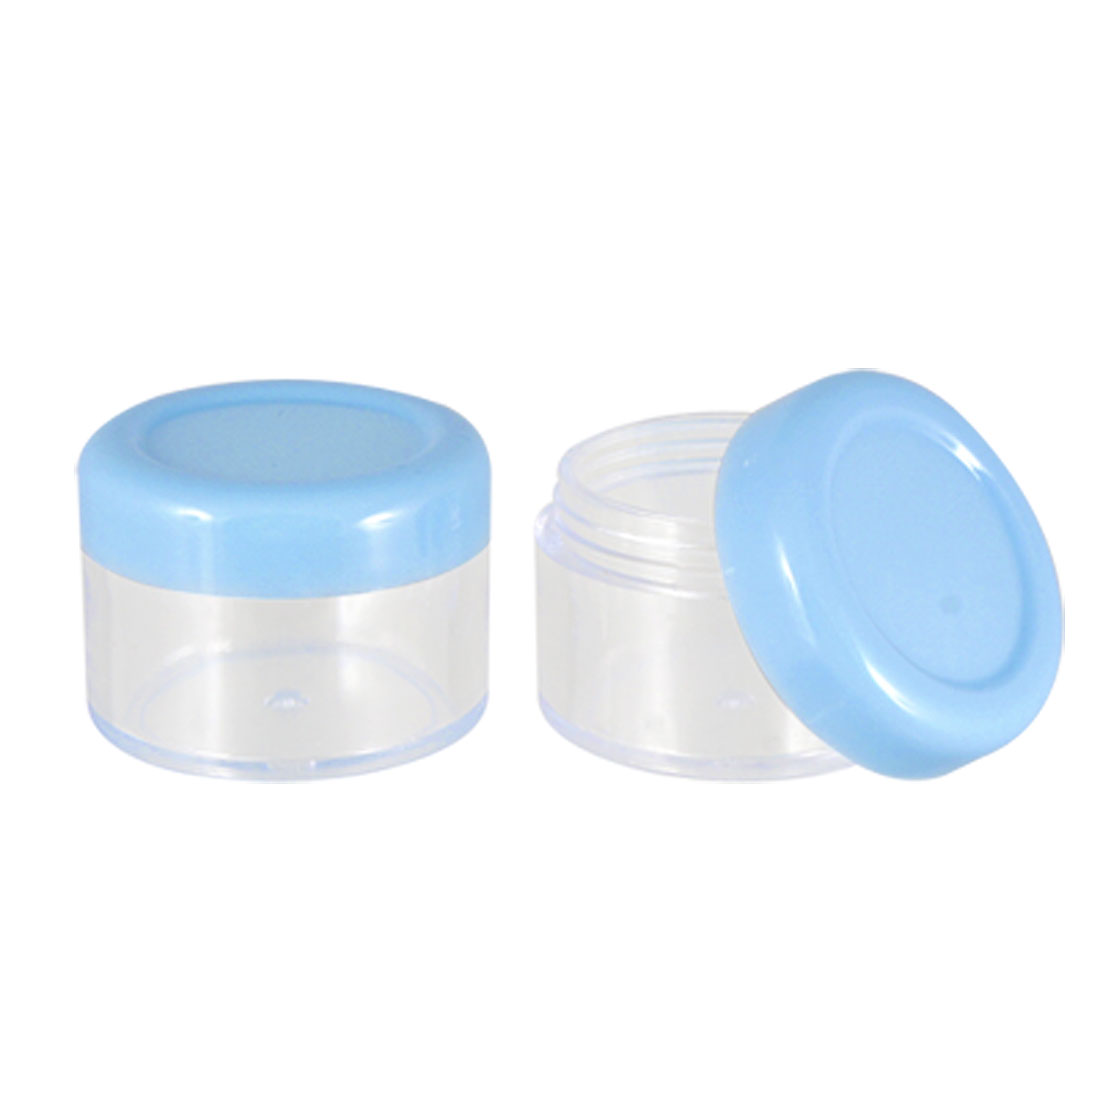 2 Pcs Blue Clear Plastic Cosmetic Face Cream Empty Case